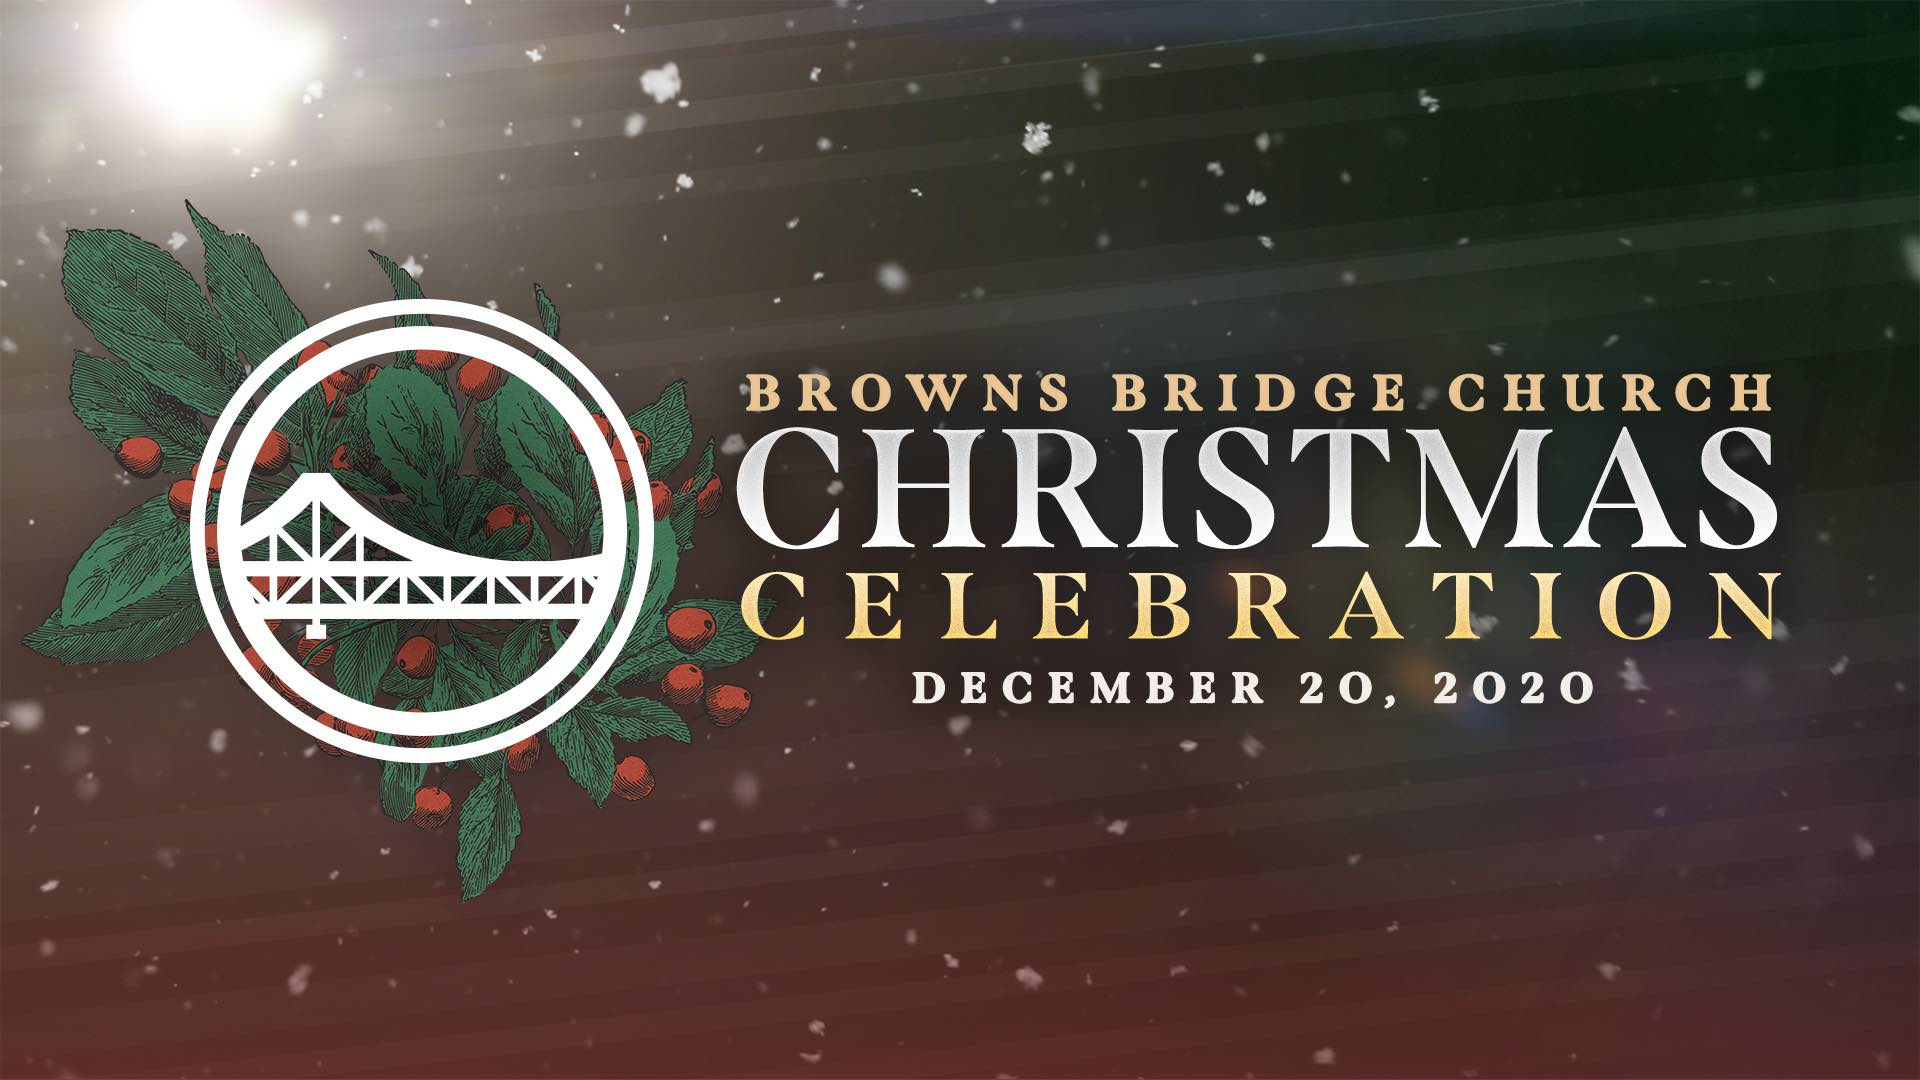 Browns Bridge Church Christmas Celebration